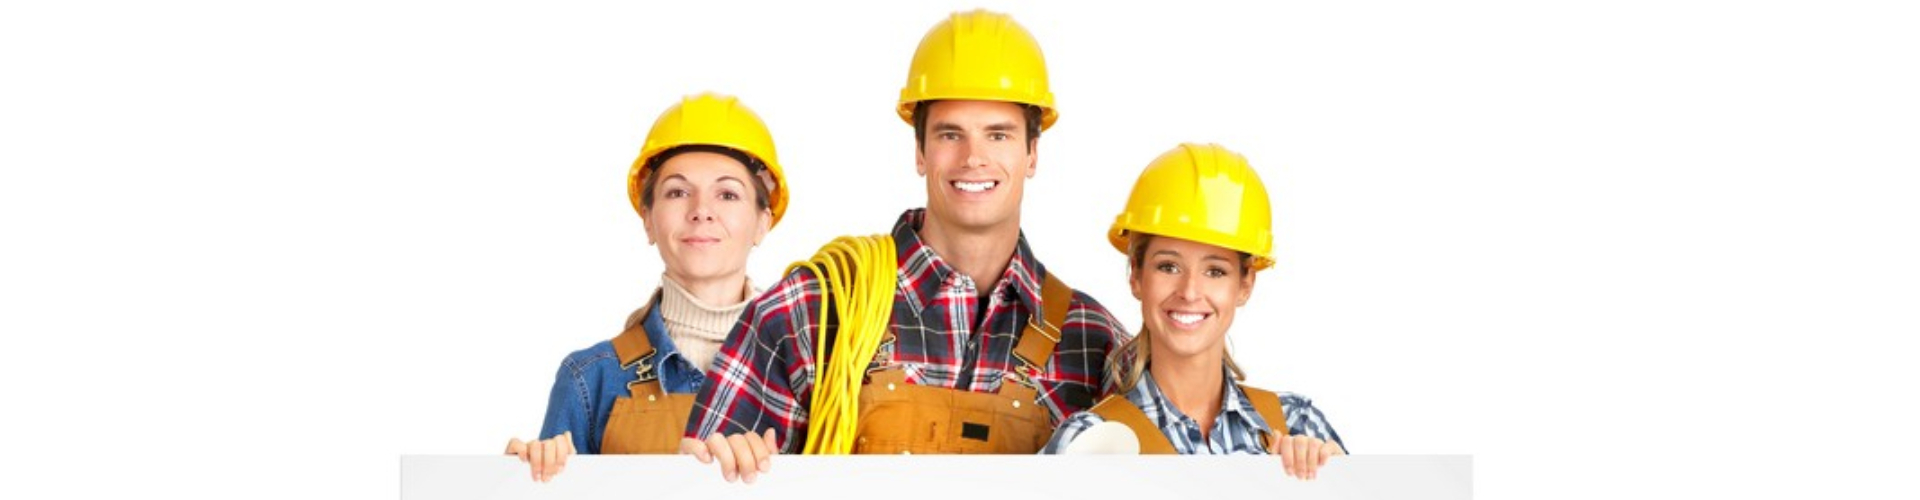 construction workers holding a sign smiling at the camera